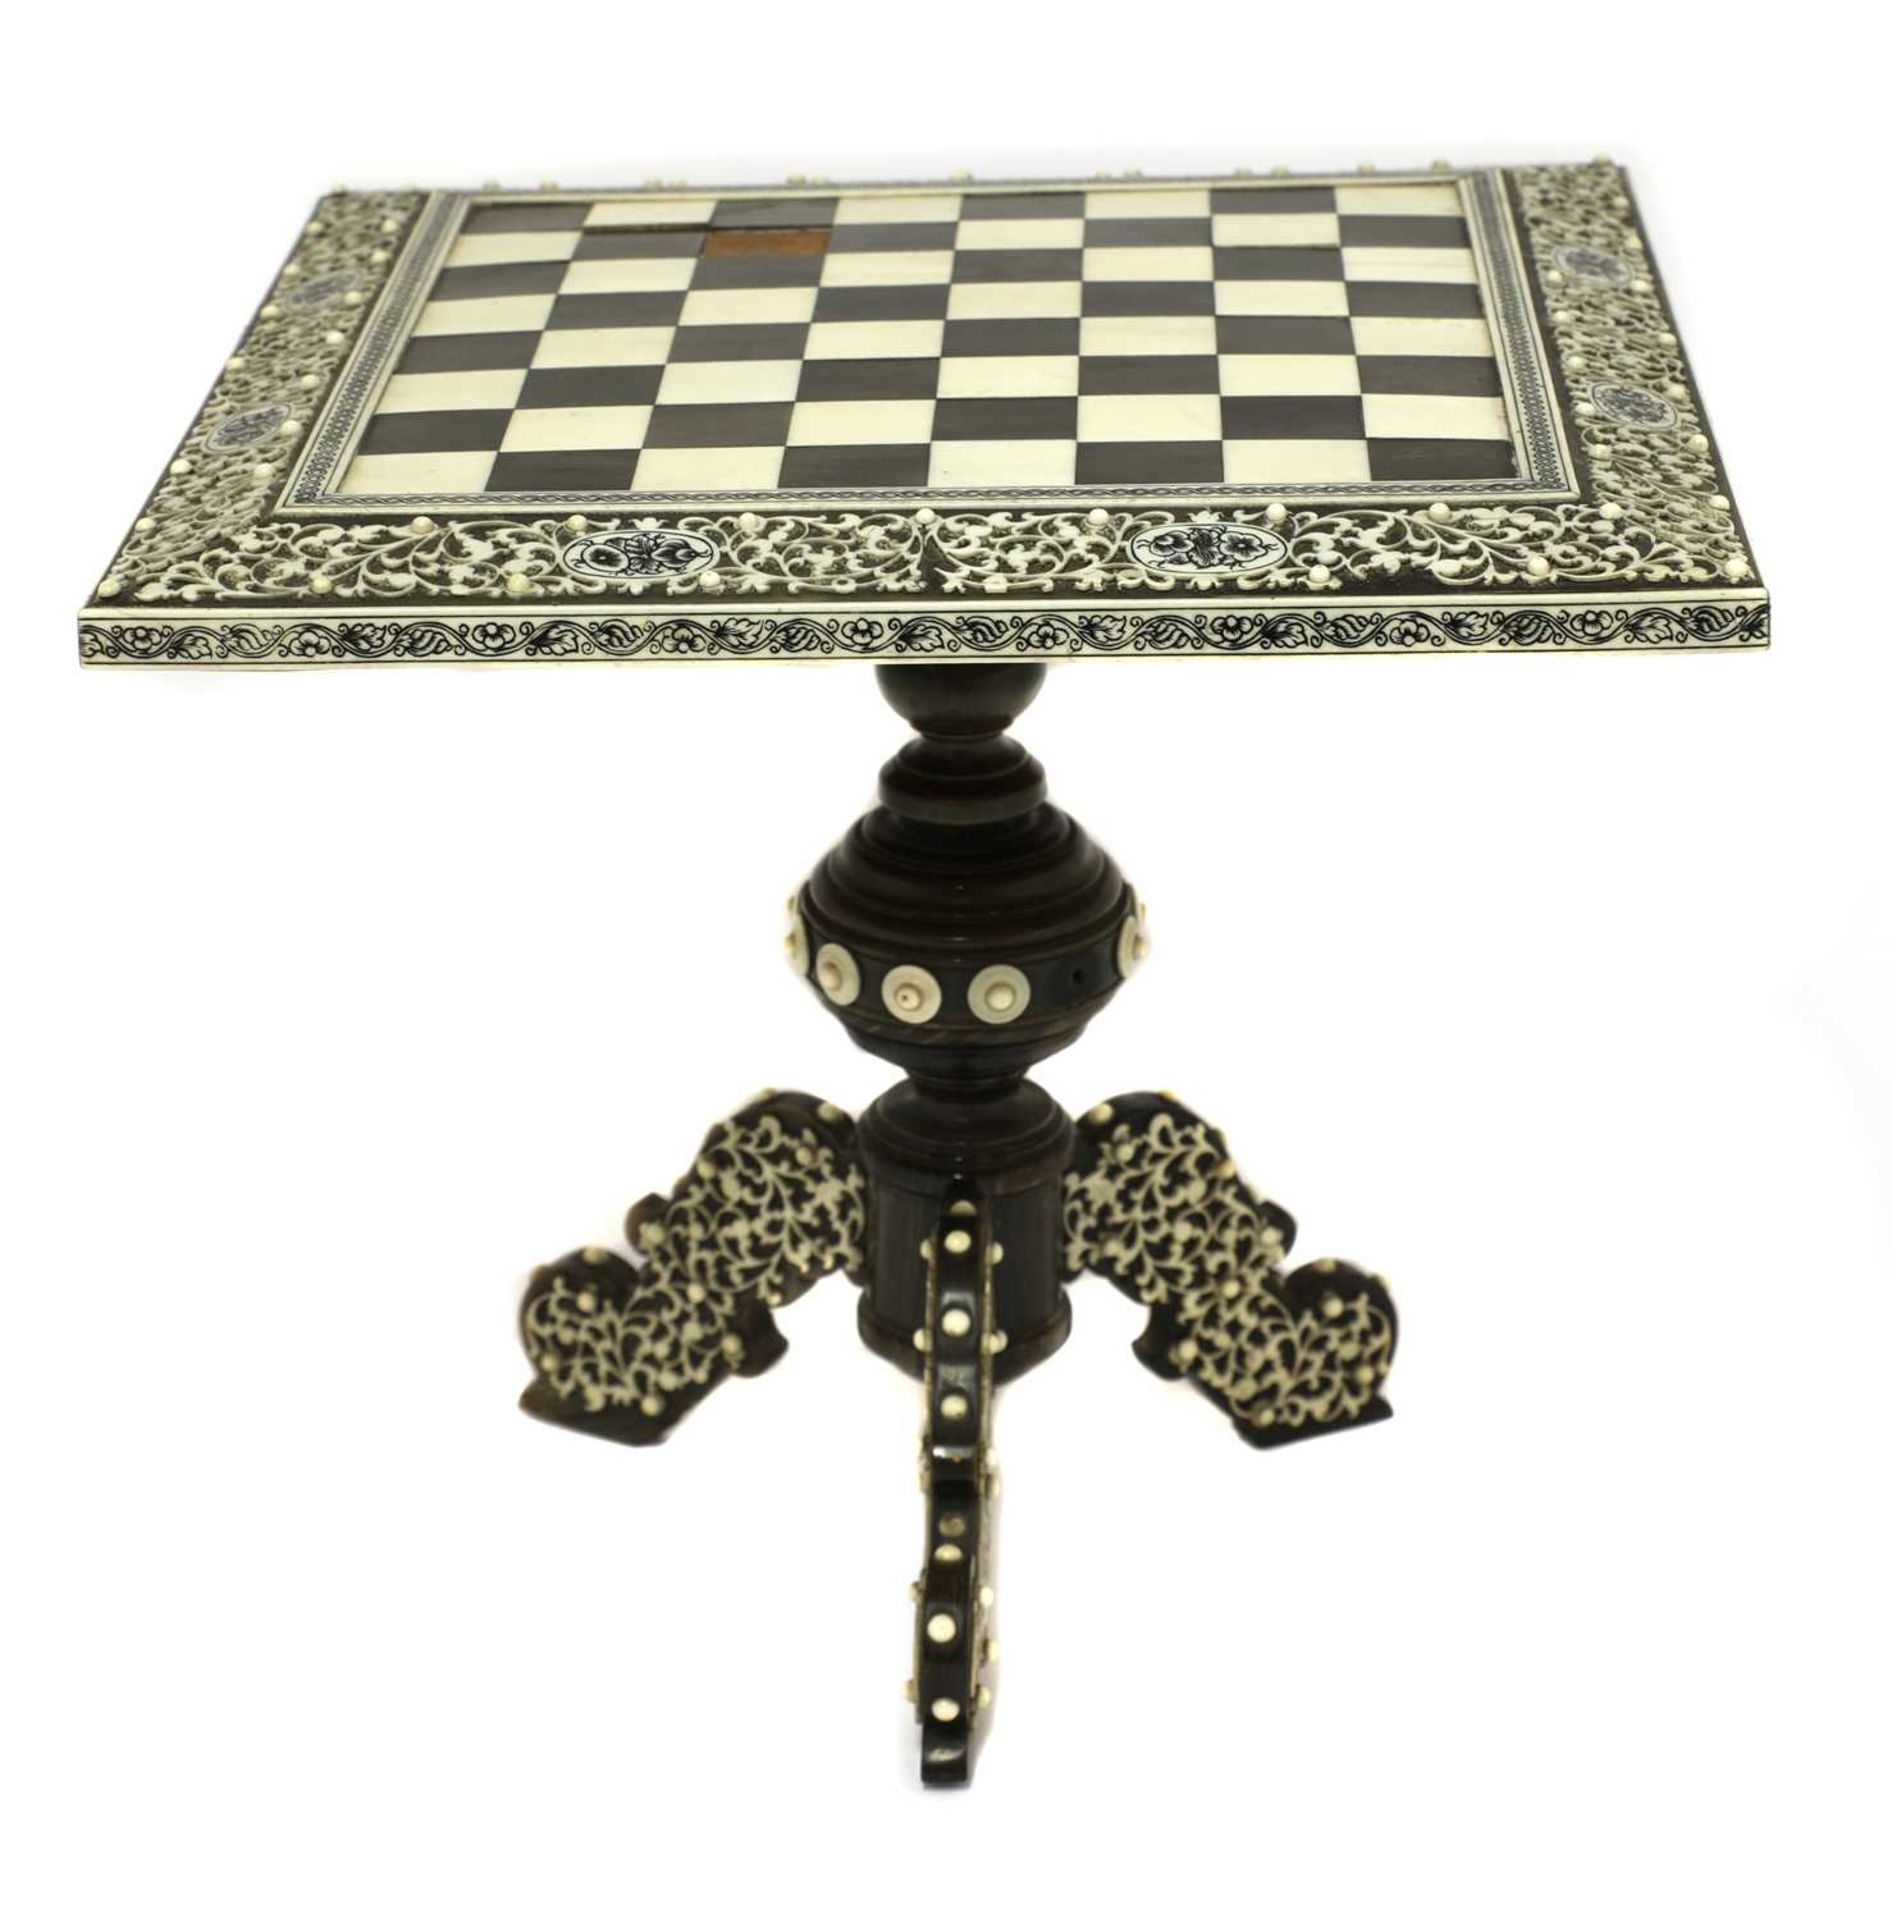 An Anglo-Indian ivory, horn and sandalwood miniature games table, - Image 2 of 4